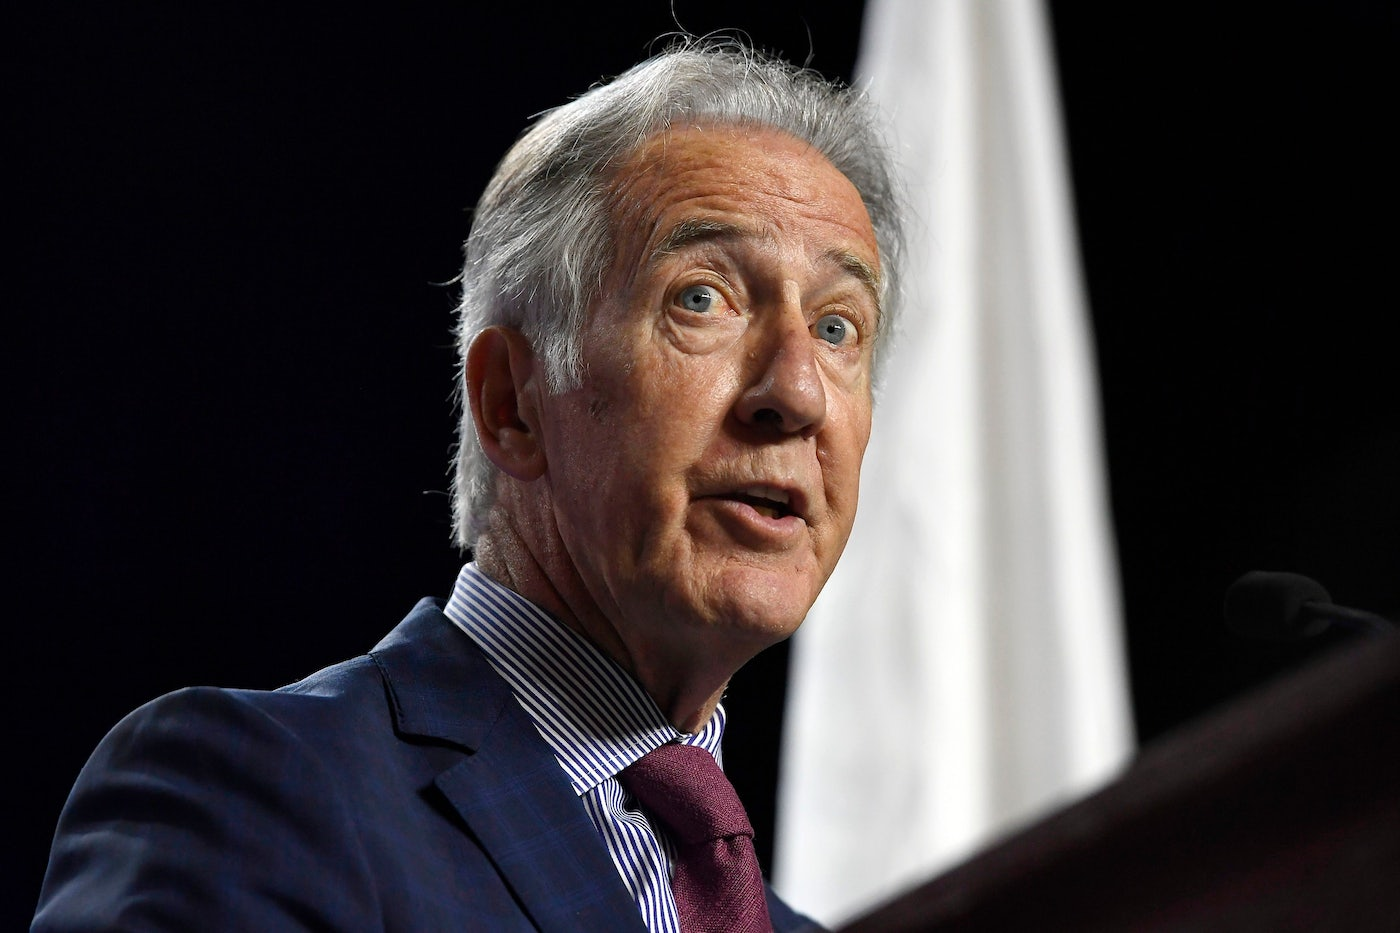 House Ways and Means Chairman Richard Neal speaks to delegates during the 2019 Massachusetts Democratic Party Convention.